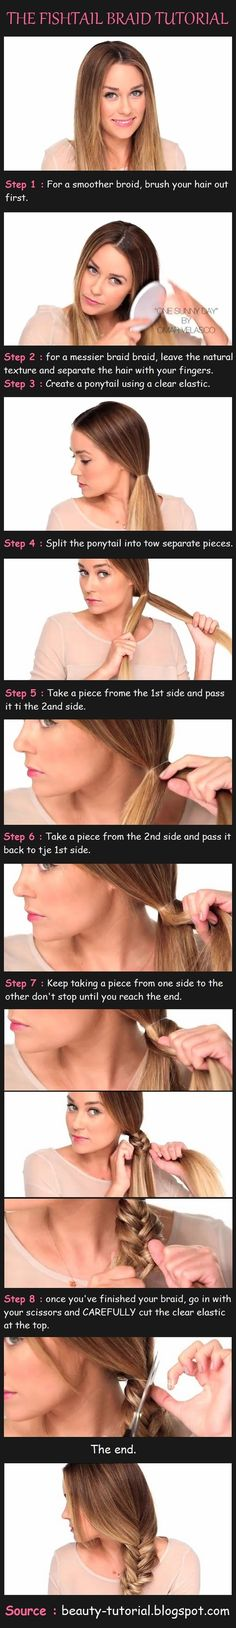 fish-tail braid tutorial